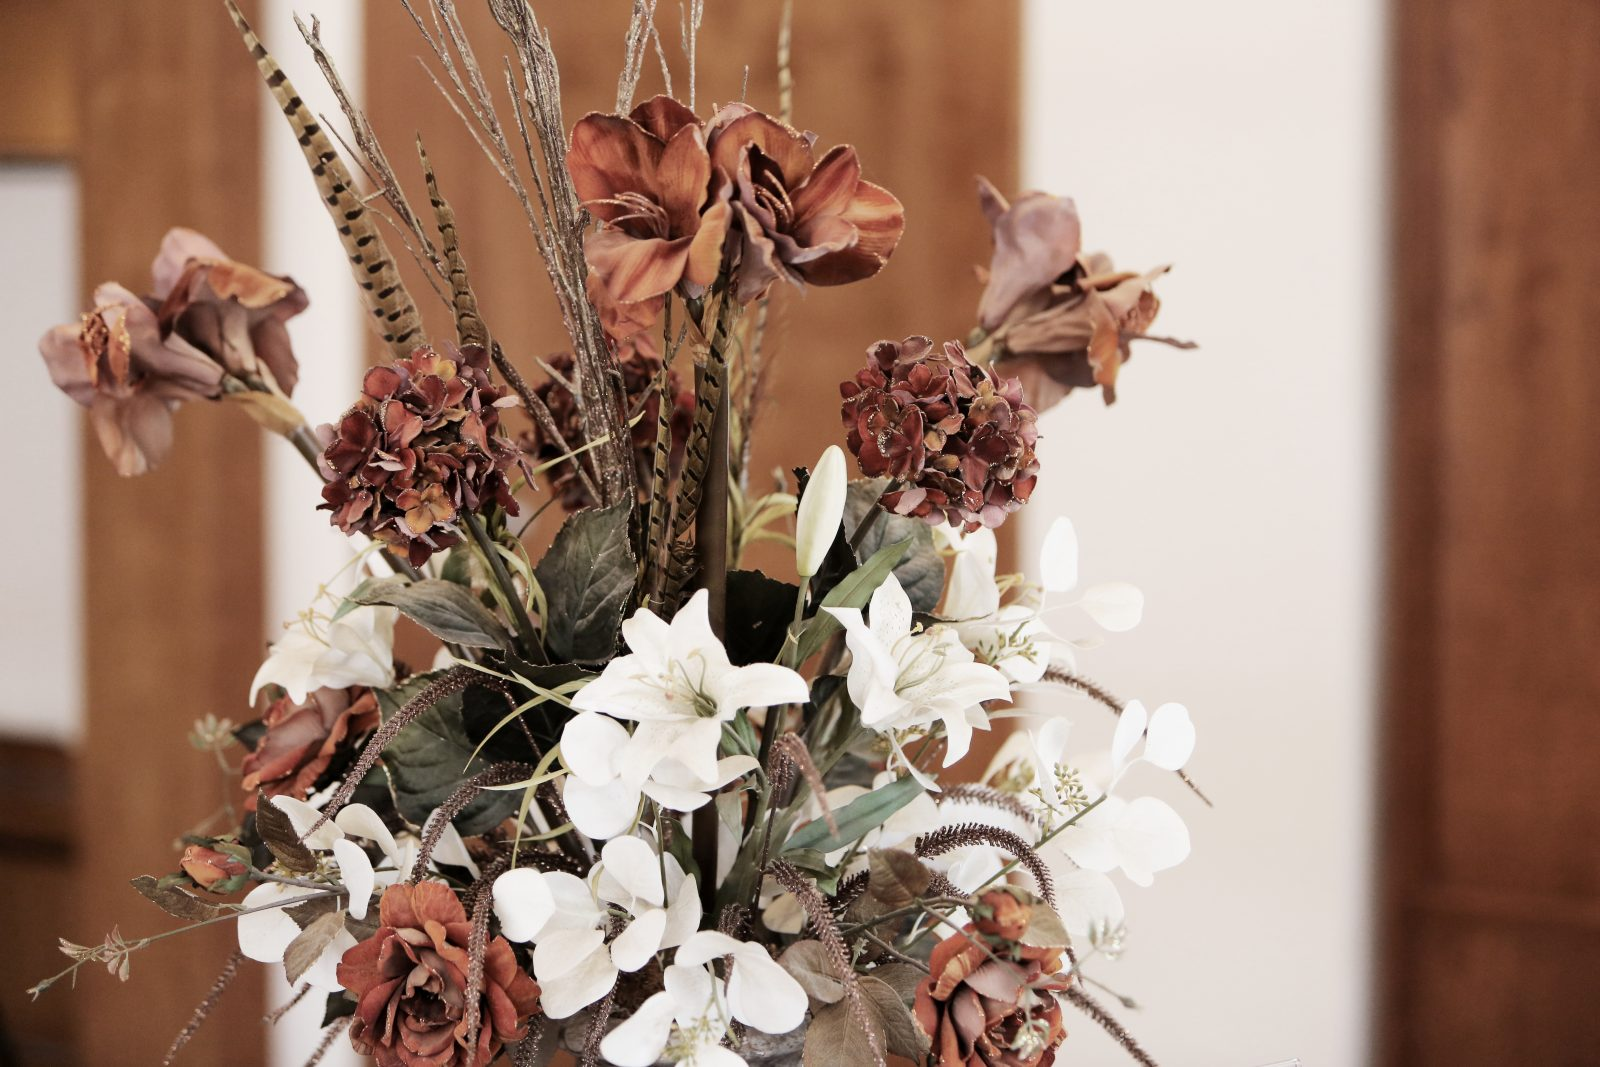 Bouquet of flowers free stock photos life of pix bouquet of flowers izmirmasajfo Gallery